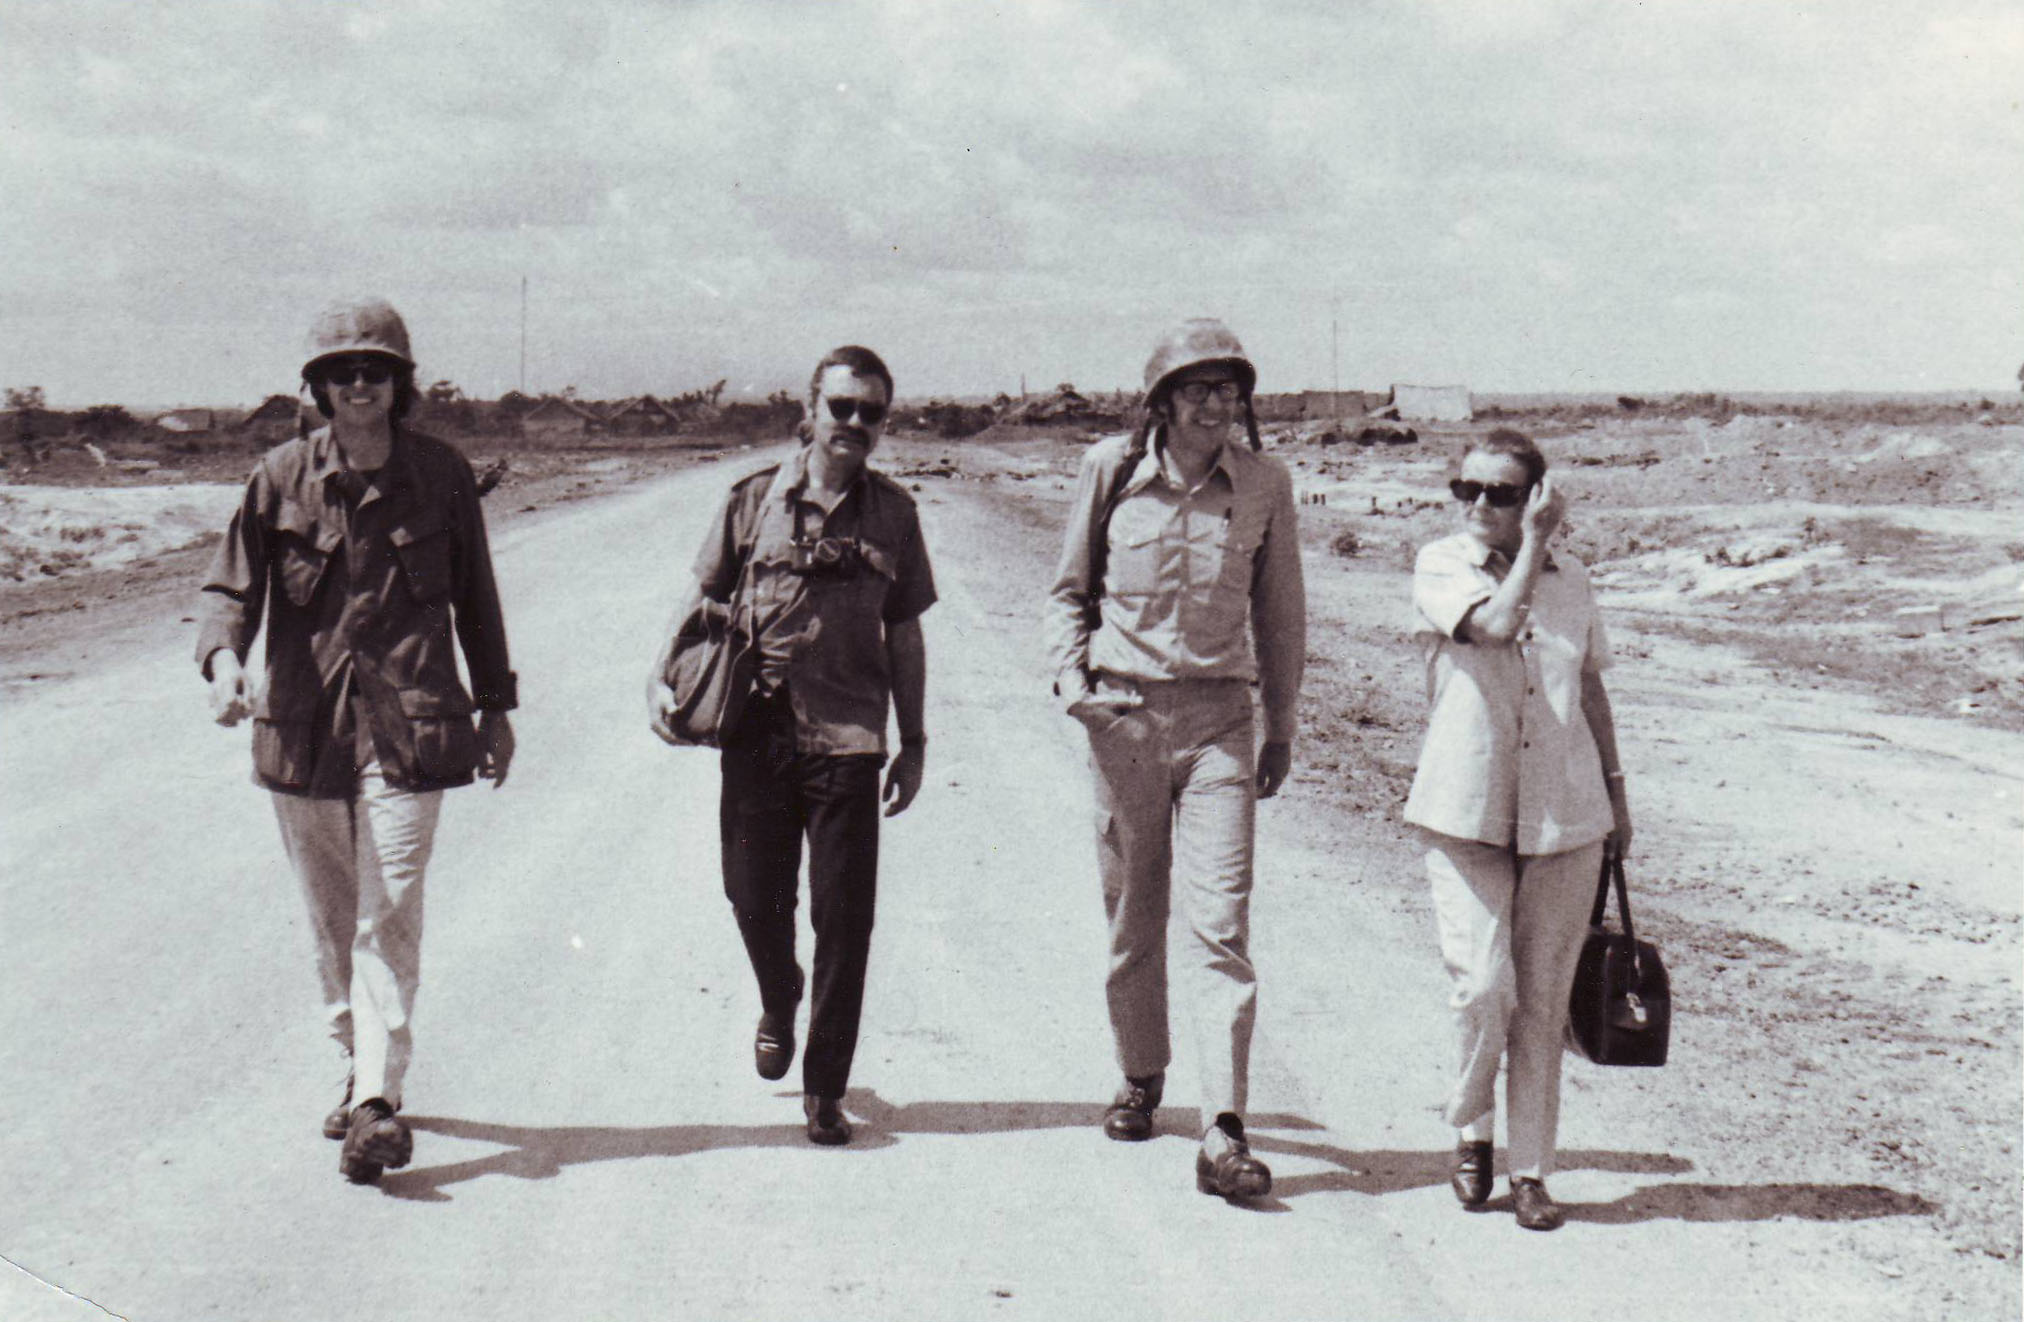 Clare Hollingworth with colleagues in Vietnam during the 1970s